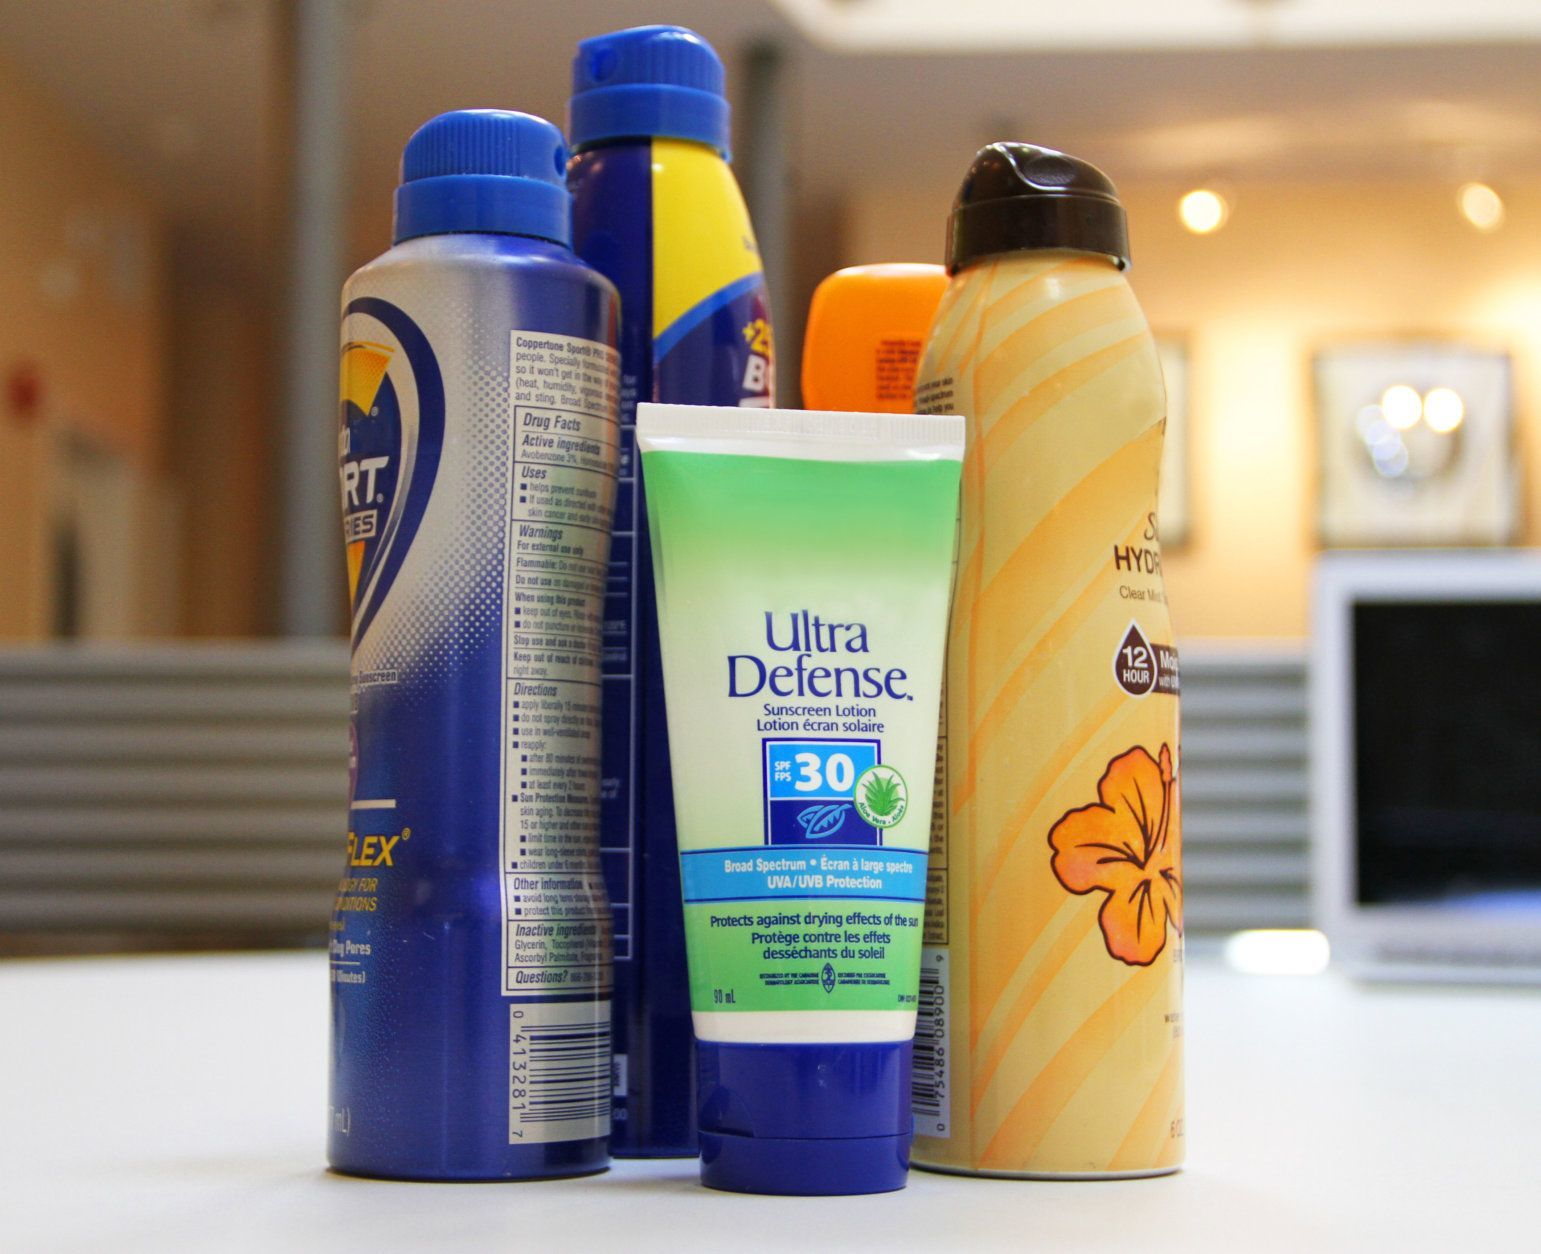 A new study is the first to prove that SPF-30 sunscreens already on the market can not only protect you from sunburns, but can prevent the development of melanoma, an aggressive and deadly form of skin cancer.